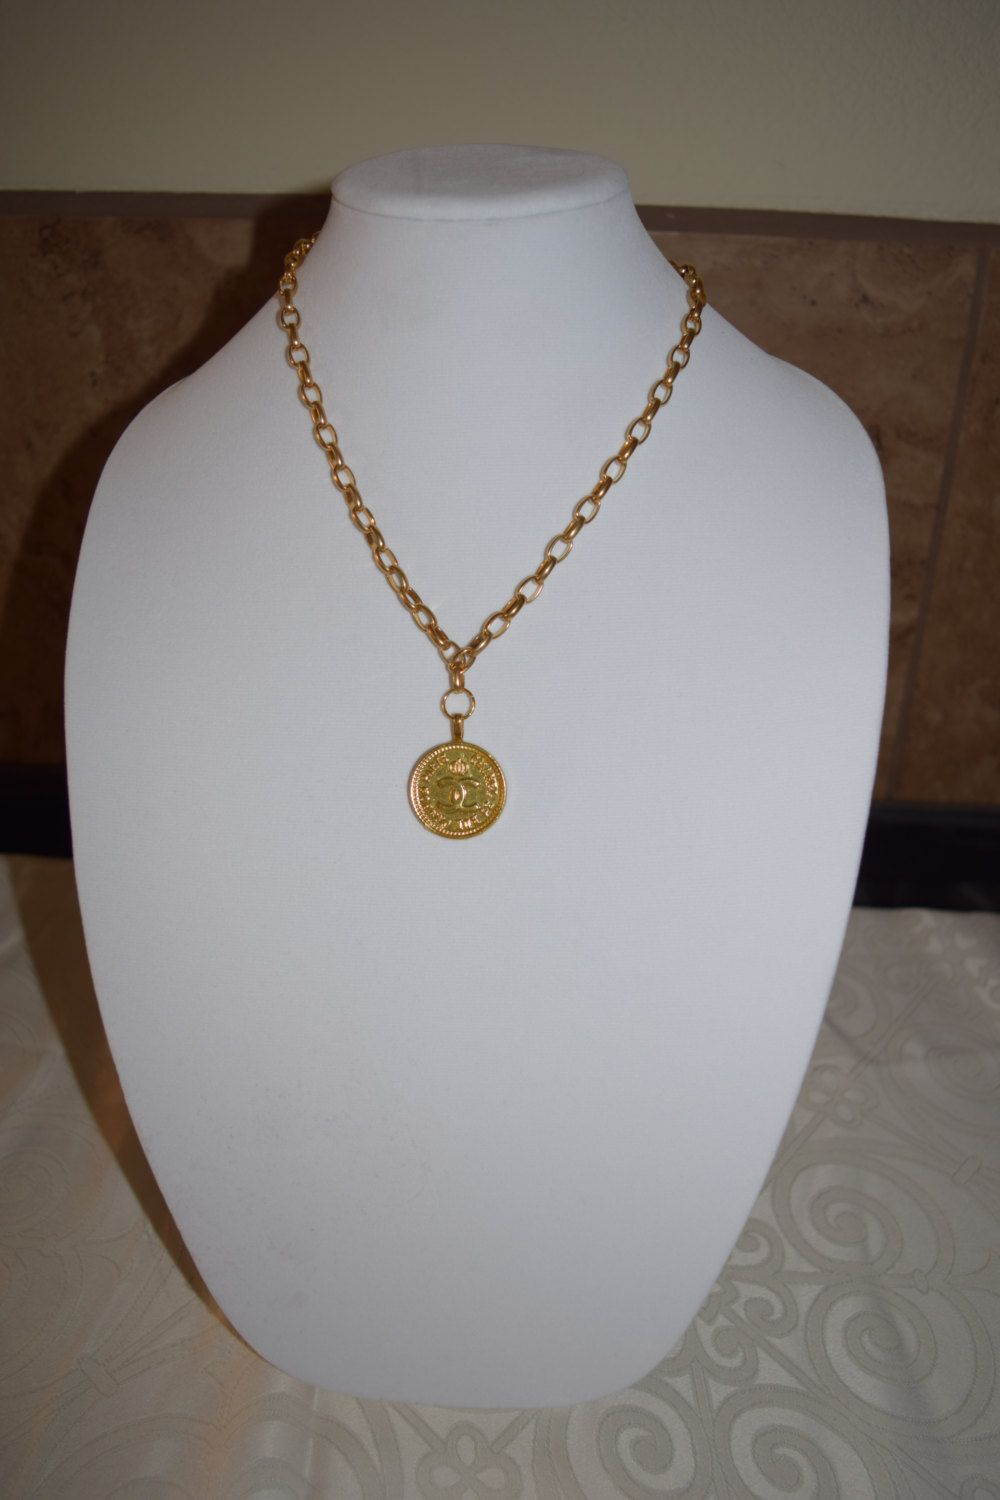 Gold necklace with Chanel Rue Cambon pendant by Vswaggercouture on Etsy